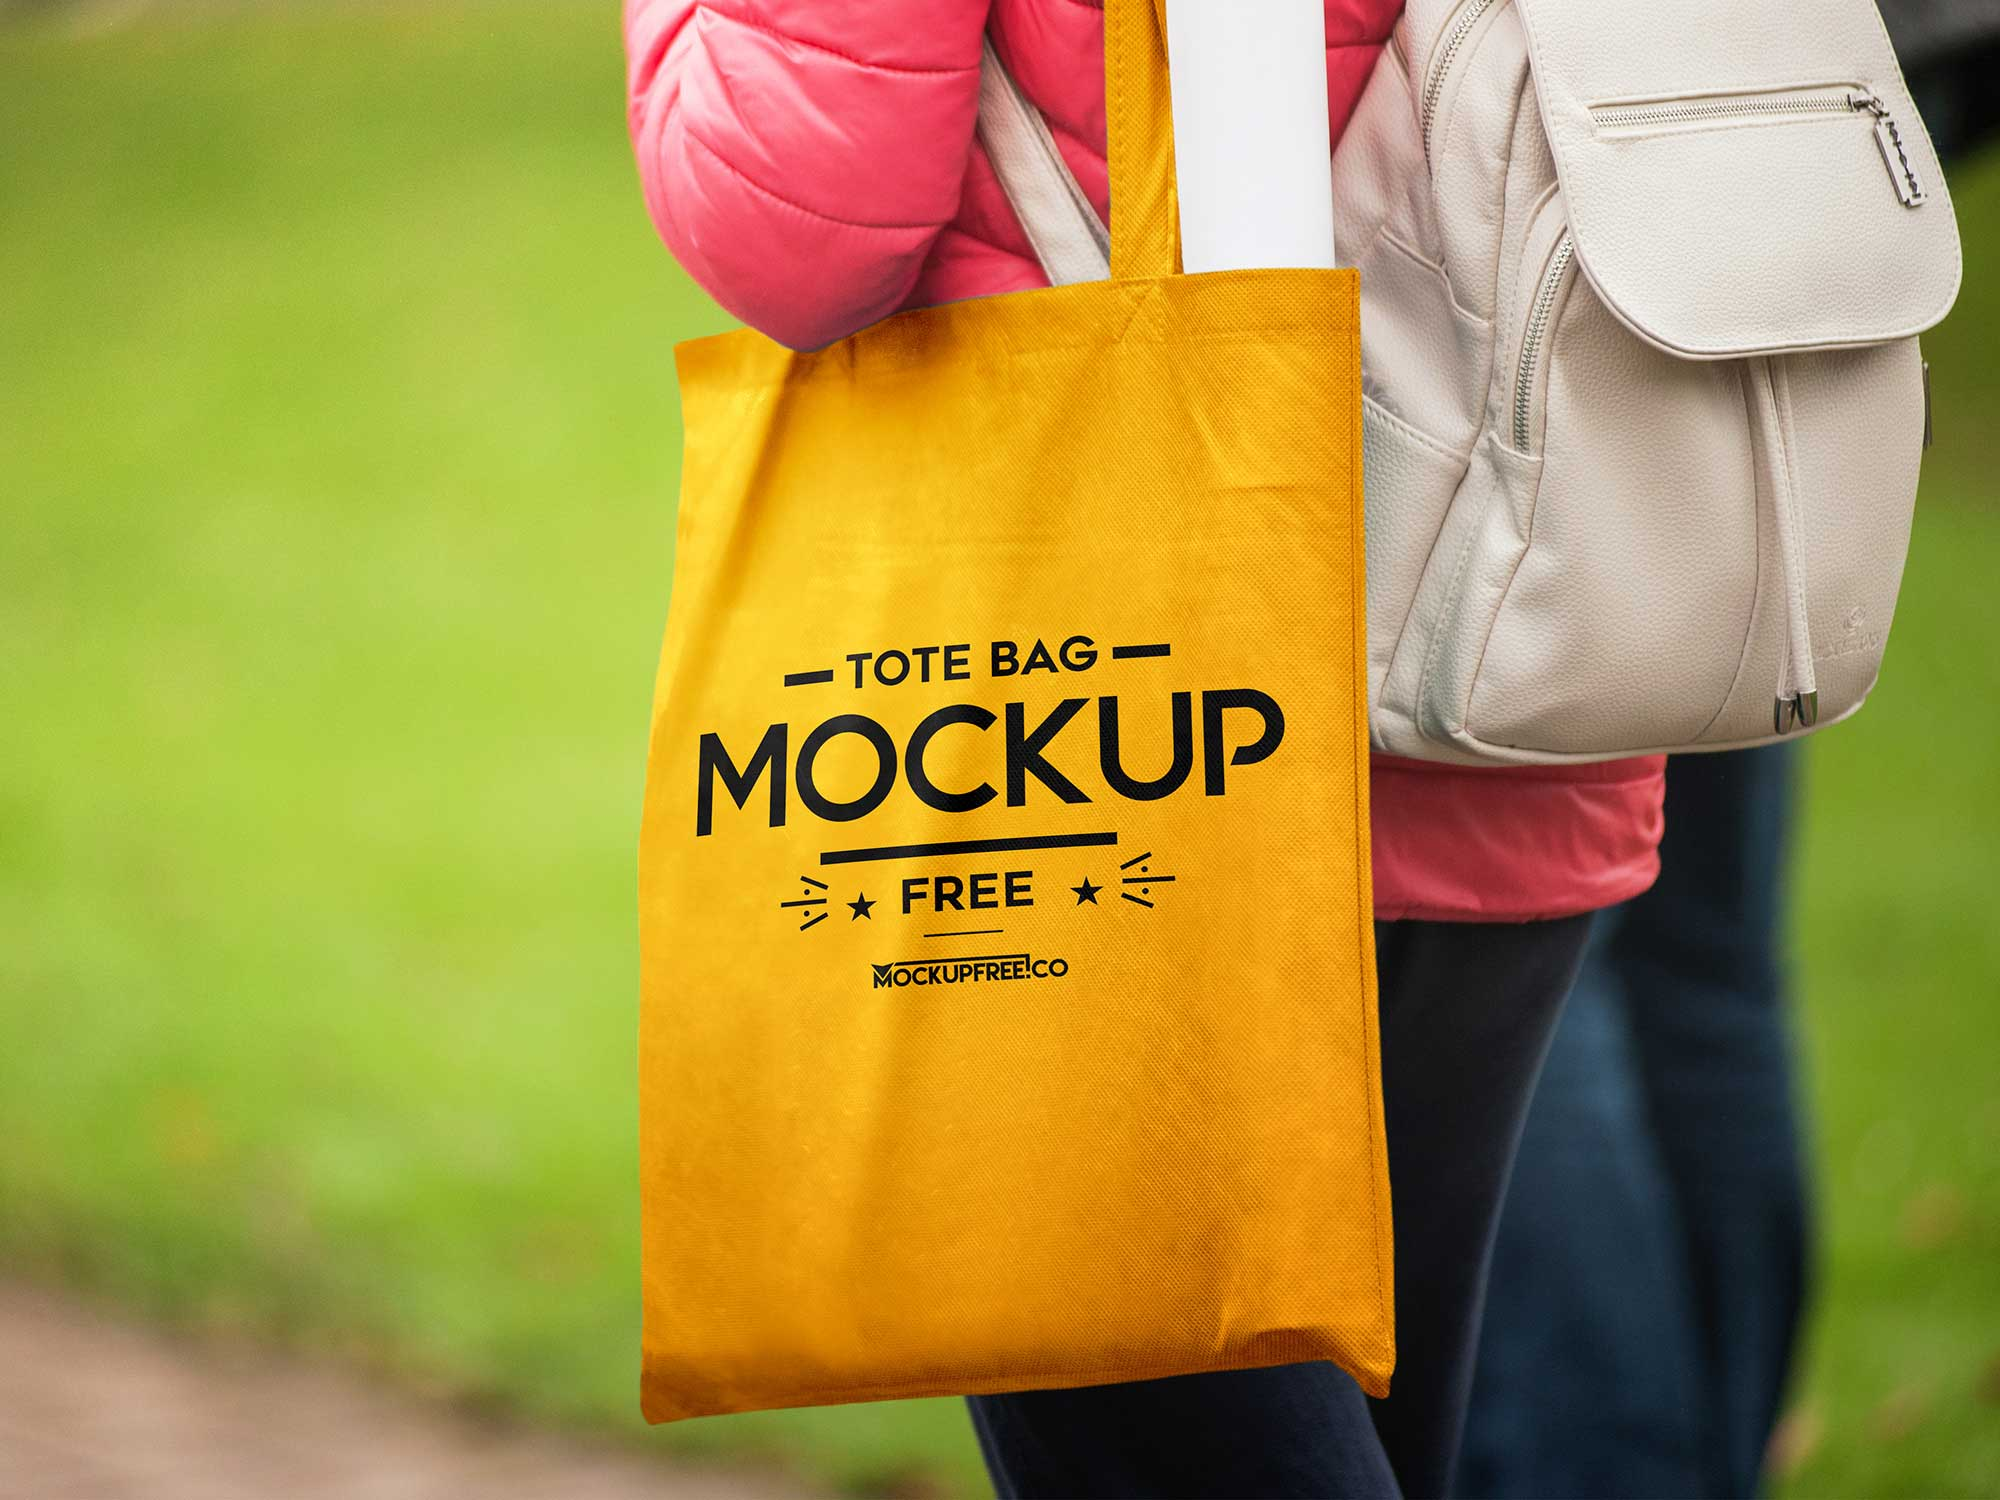 In Hand Tote Bag Mockup